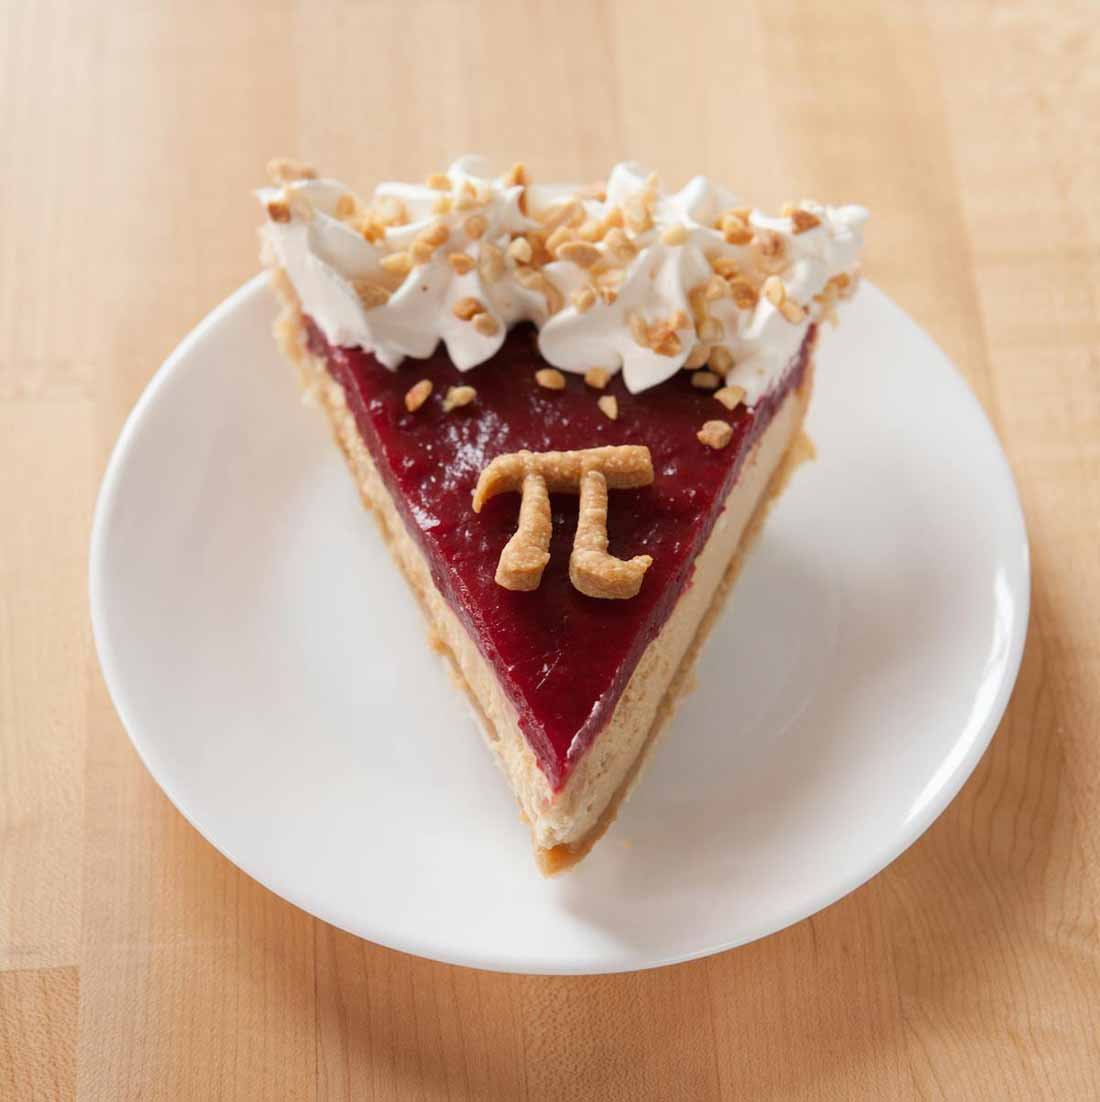 Here's a picture of a slice of delicious pie in celebration of Pi Day. (Source: Grand Traverse Pie Company/Facebook)